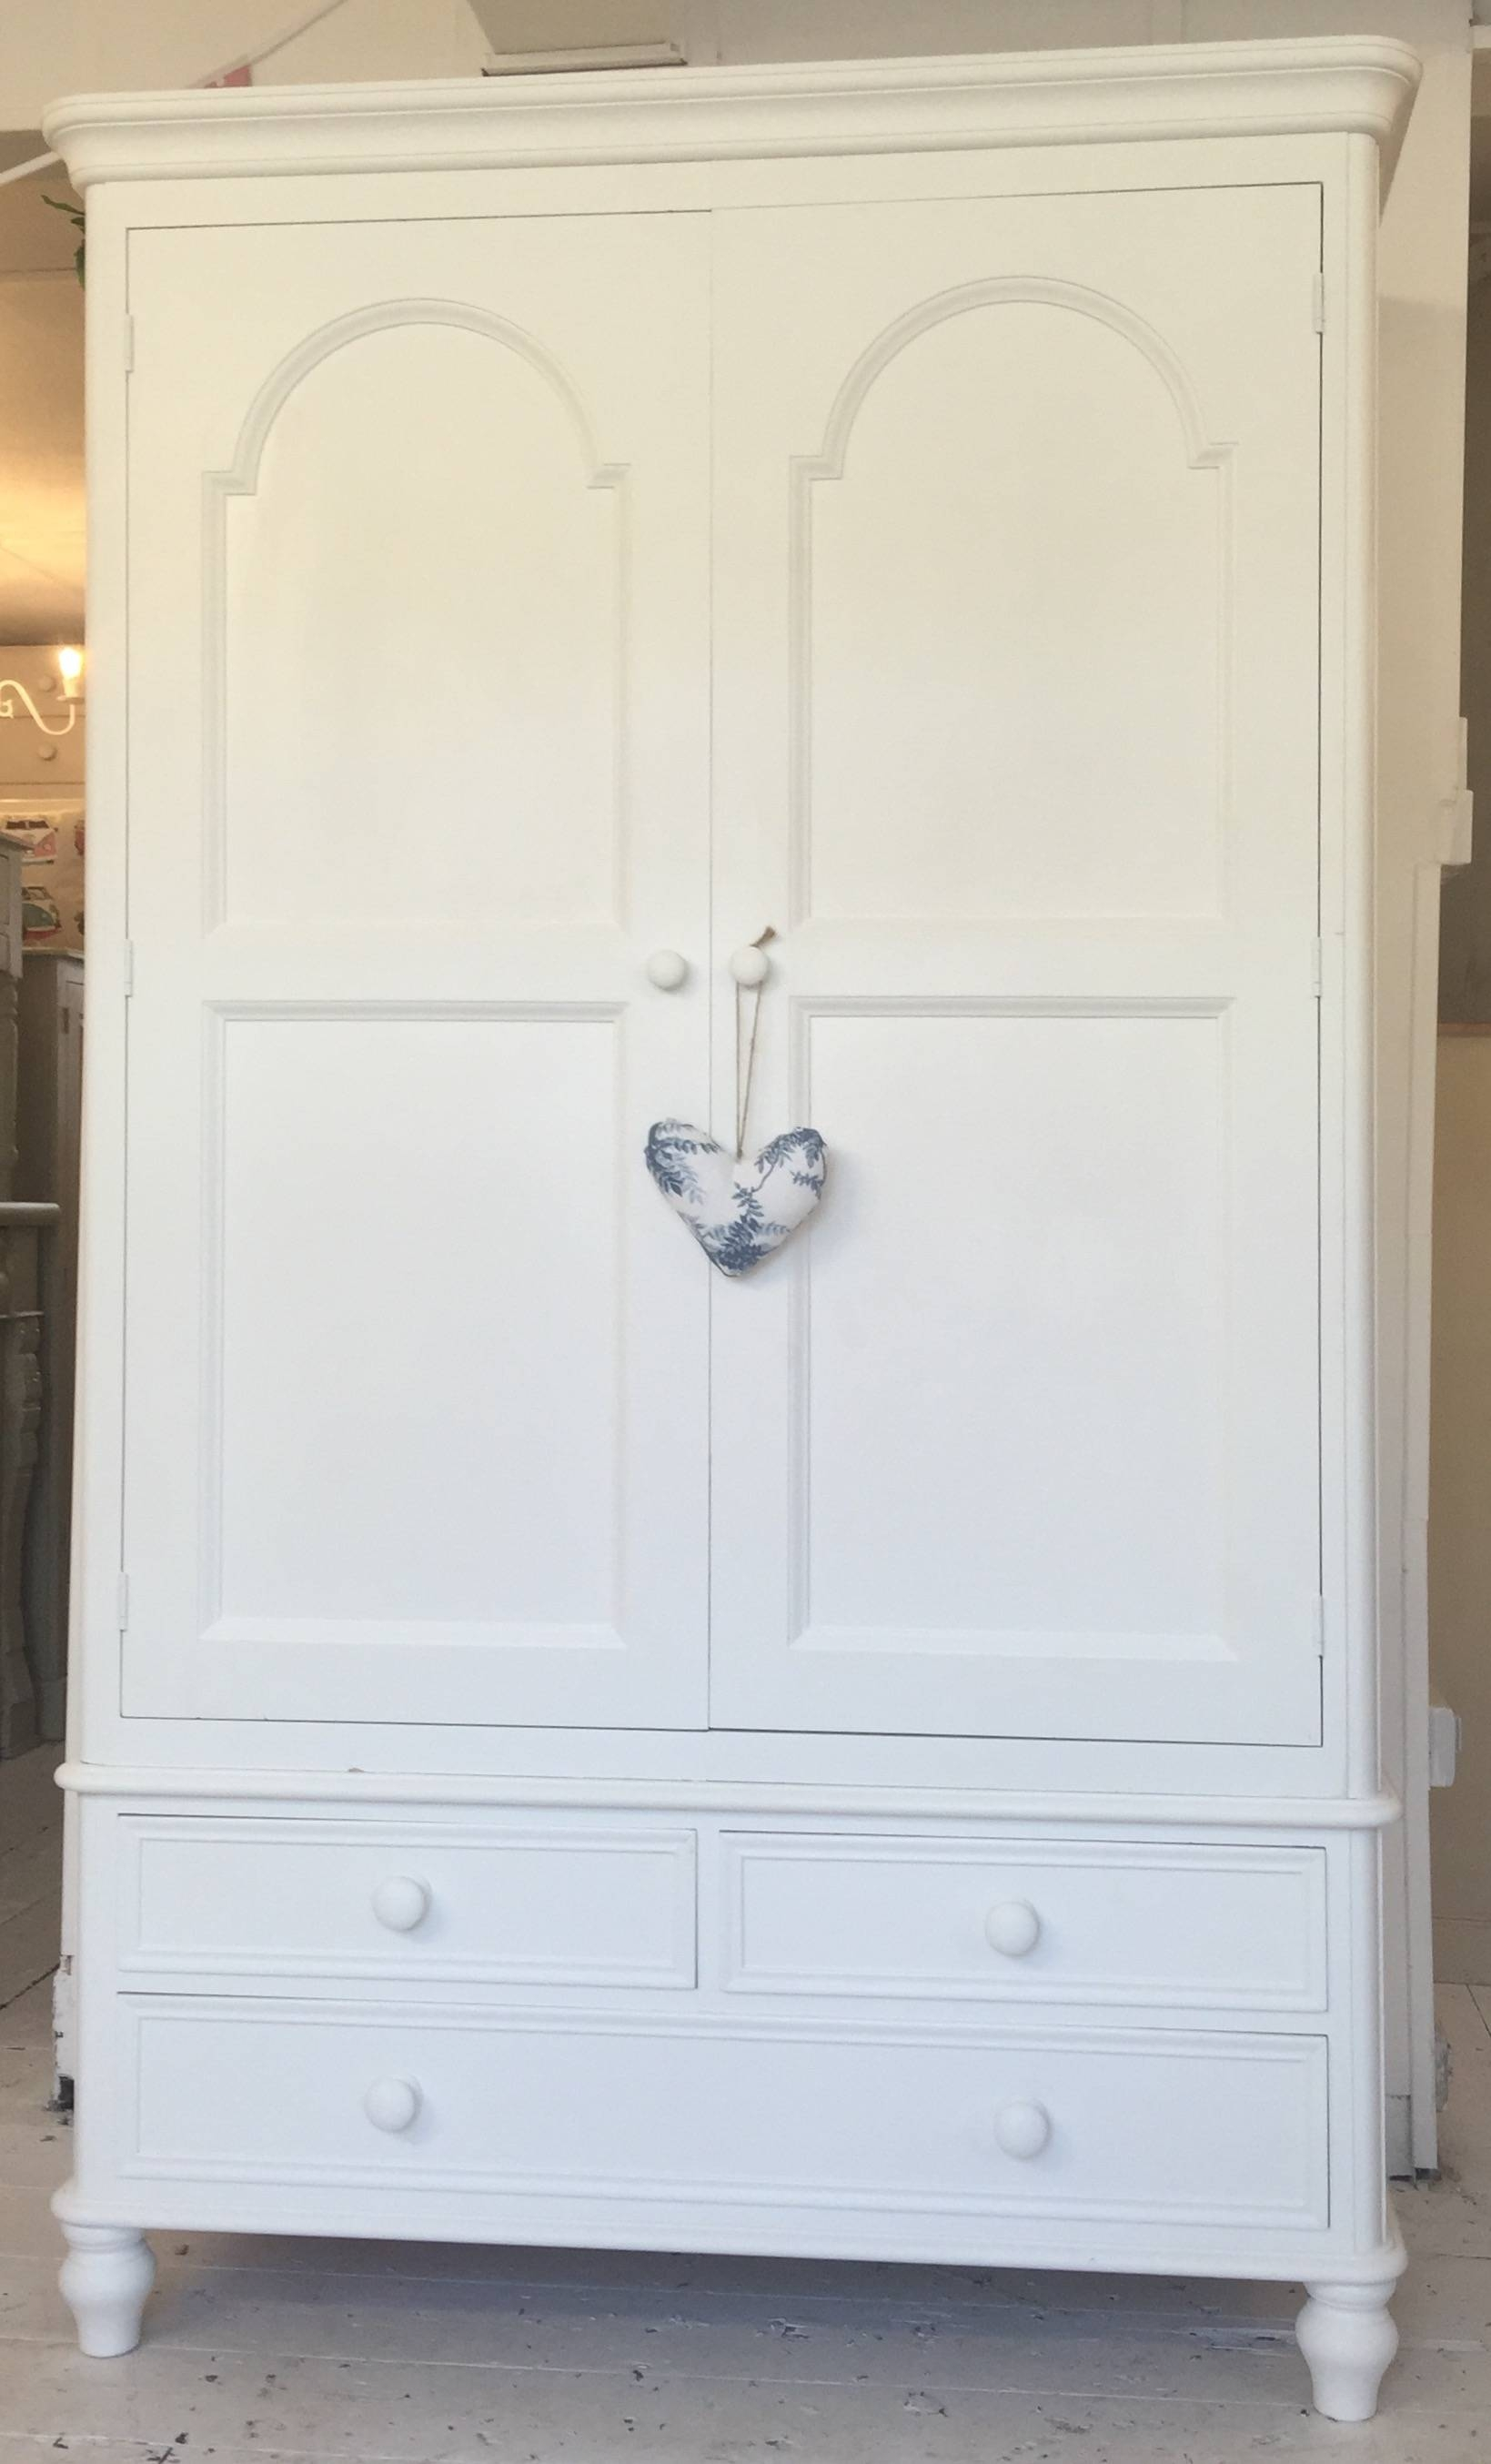 Large Solid Pine White Painted Wardrobe - Home Sweet Homehome with regard to Large White Wardrobes (Image 10 of 15)